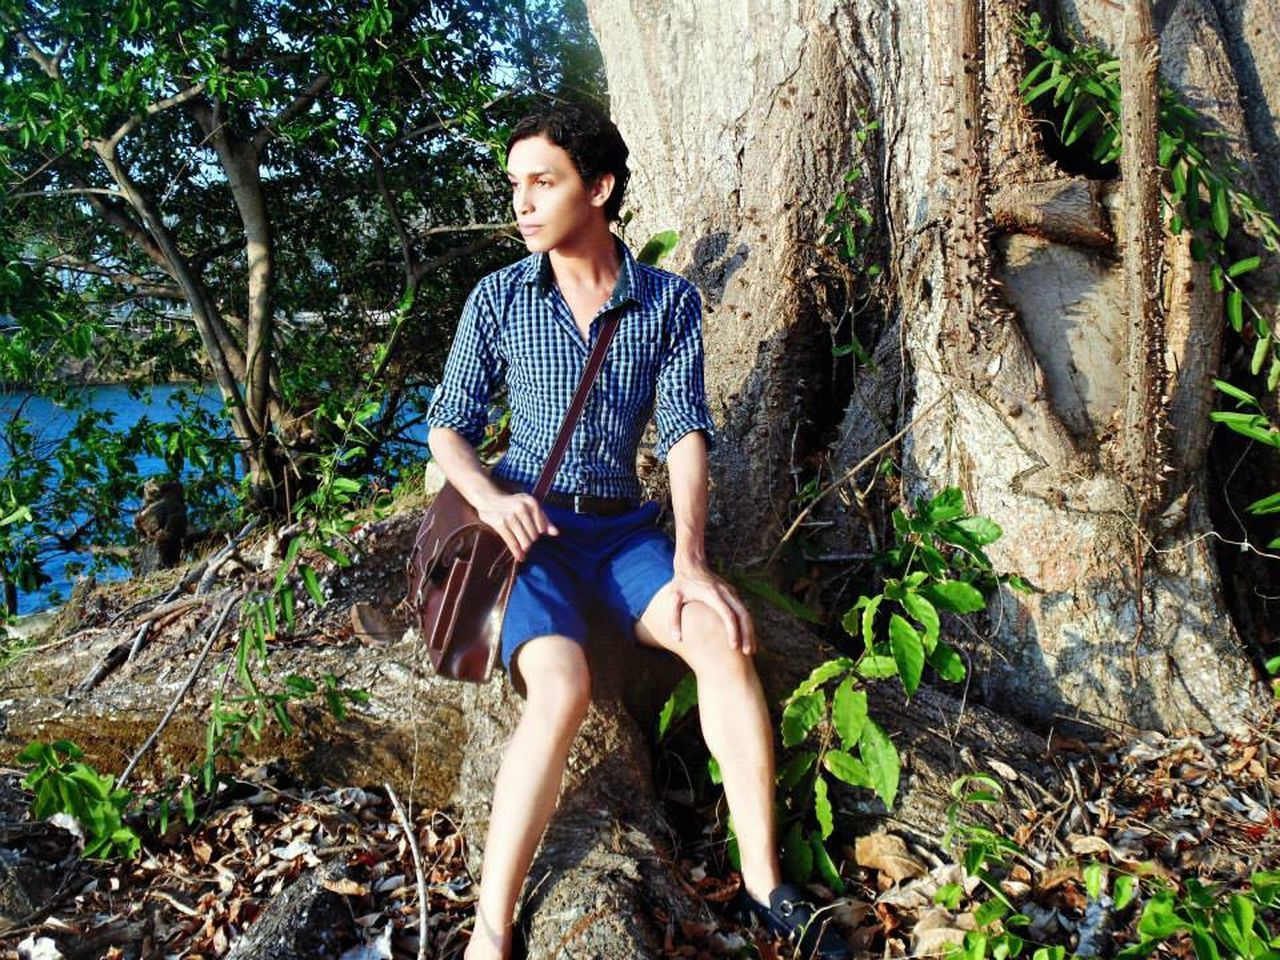 tree, casual clothing, one person, outdoors, forest, sitting, young adult, nature, front view, plant, day, smiling, tree trunk, happiness, full length, real people, young women, growth, only women, people, adults only, beauty in nature, adult, one woman only, one young woman only